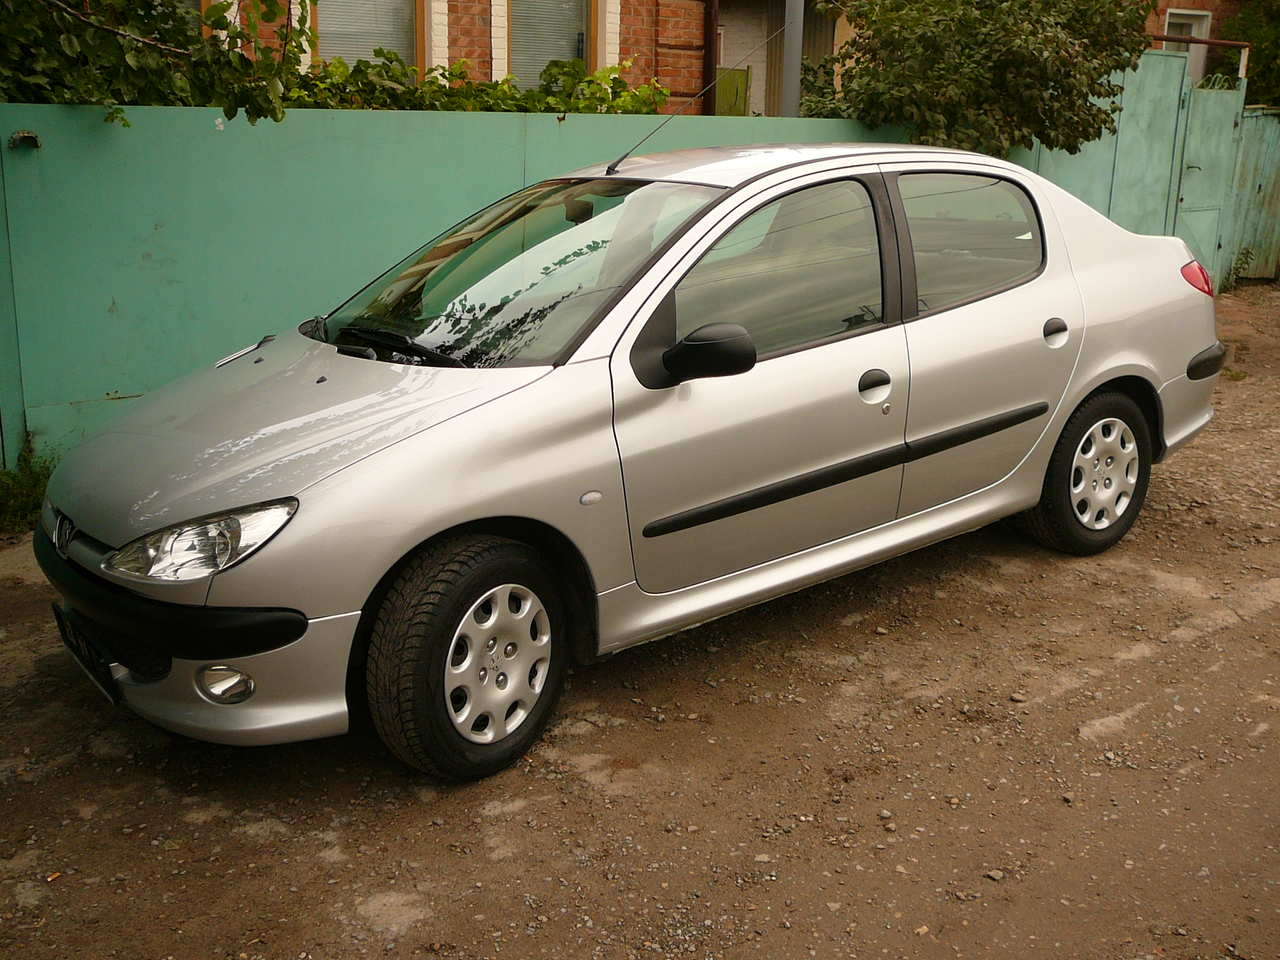 2007 peugeot 206 sedan images 1400cc gasoline ff manual for sale. Black Bedroom Furniture Sets. Home Design Ideas